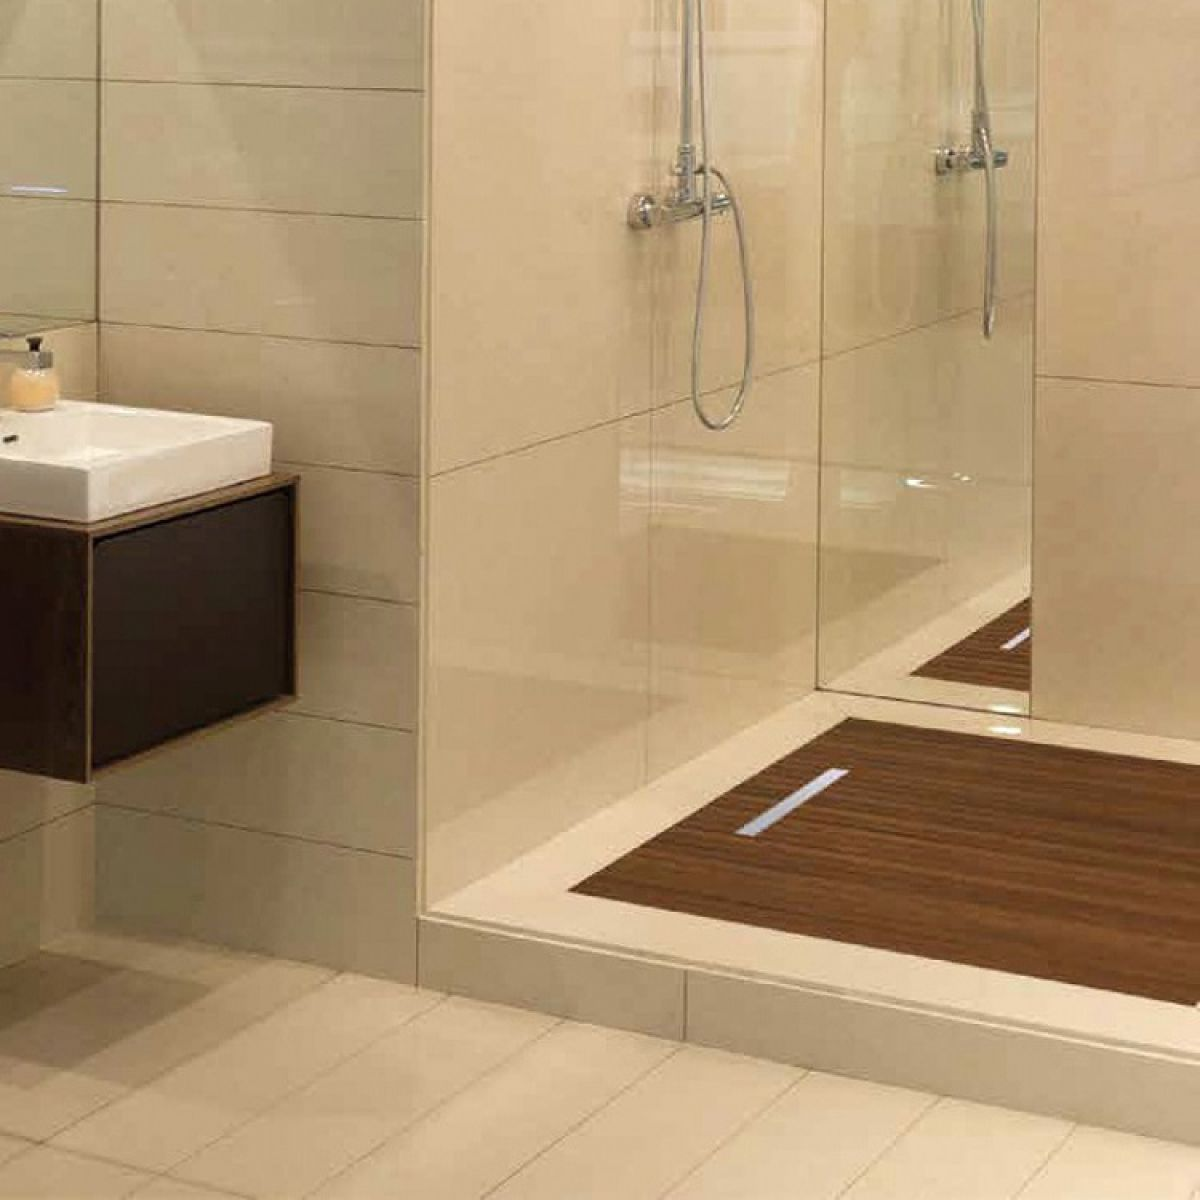 Abacus elements concept raised wetroom kit with linear - Bath shower room ...